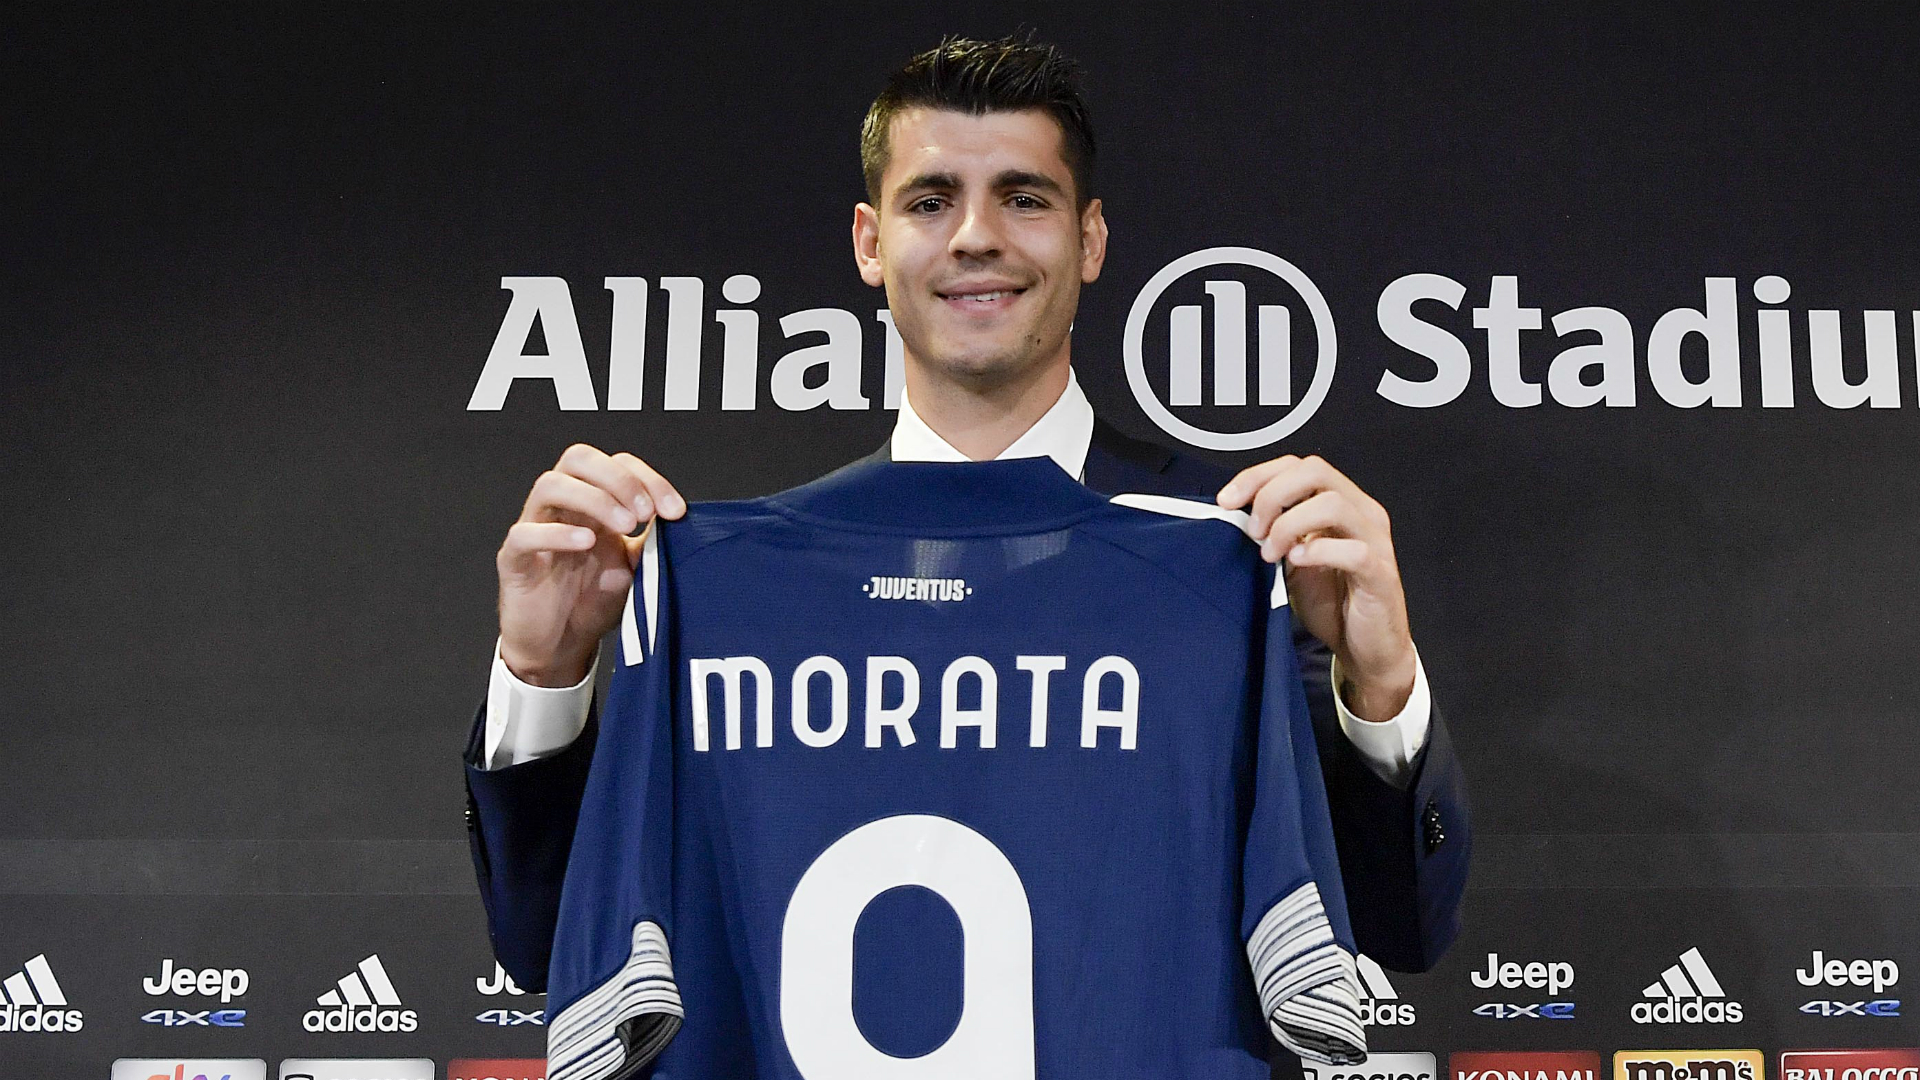 Morata was not the third choice for Juve, says Pirlo